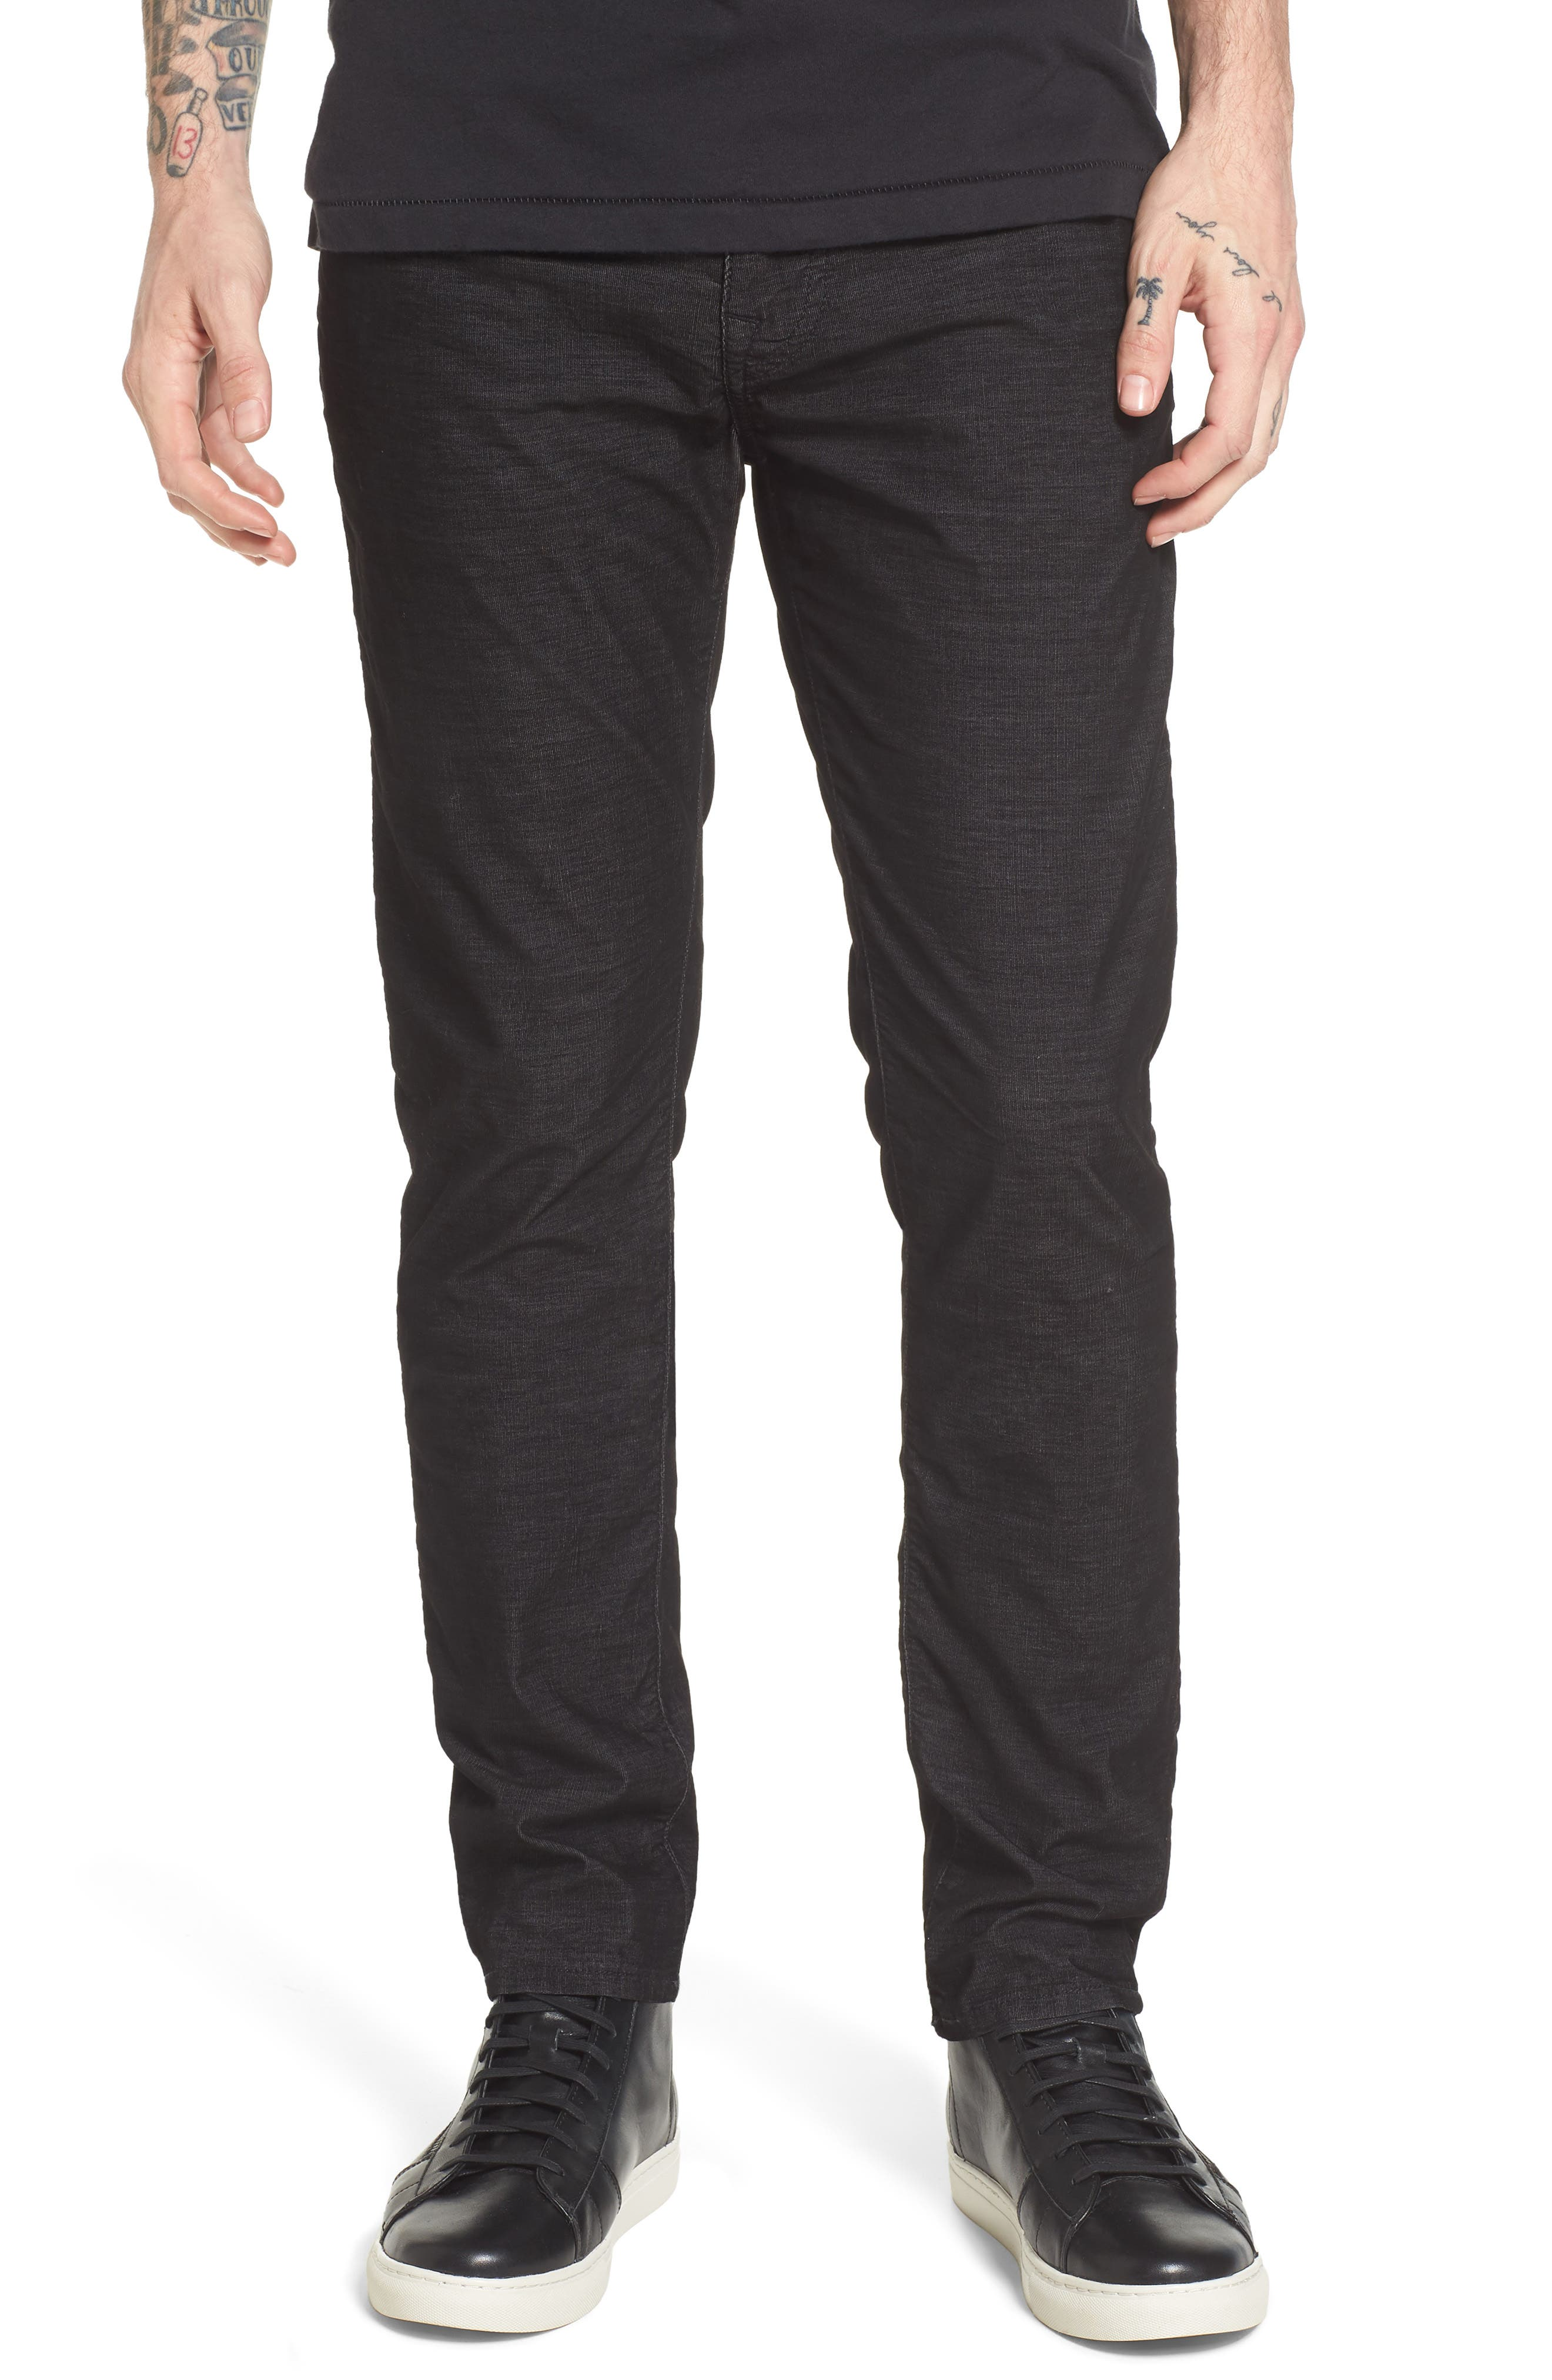 Alternate Image 1 Selected - True Religion Brand Jeans Rocco Skinny Fit Corduroy Jeans